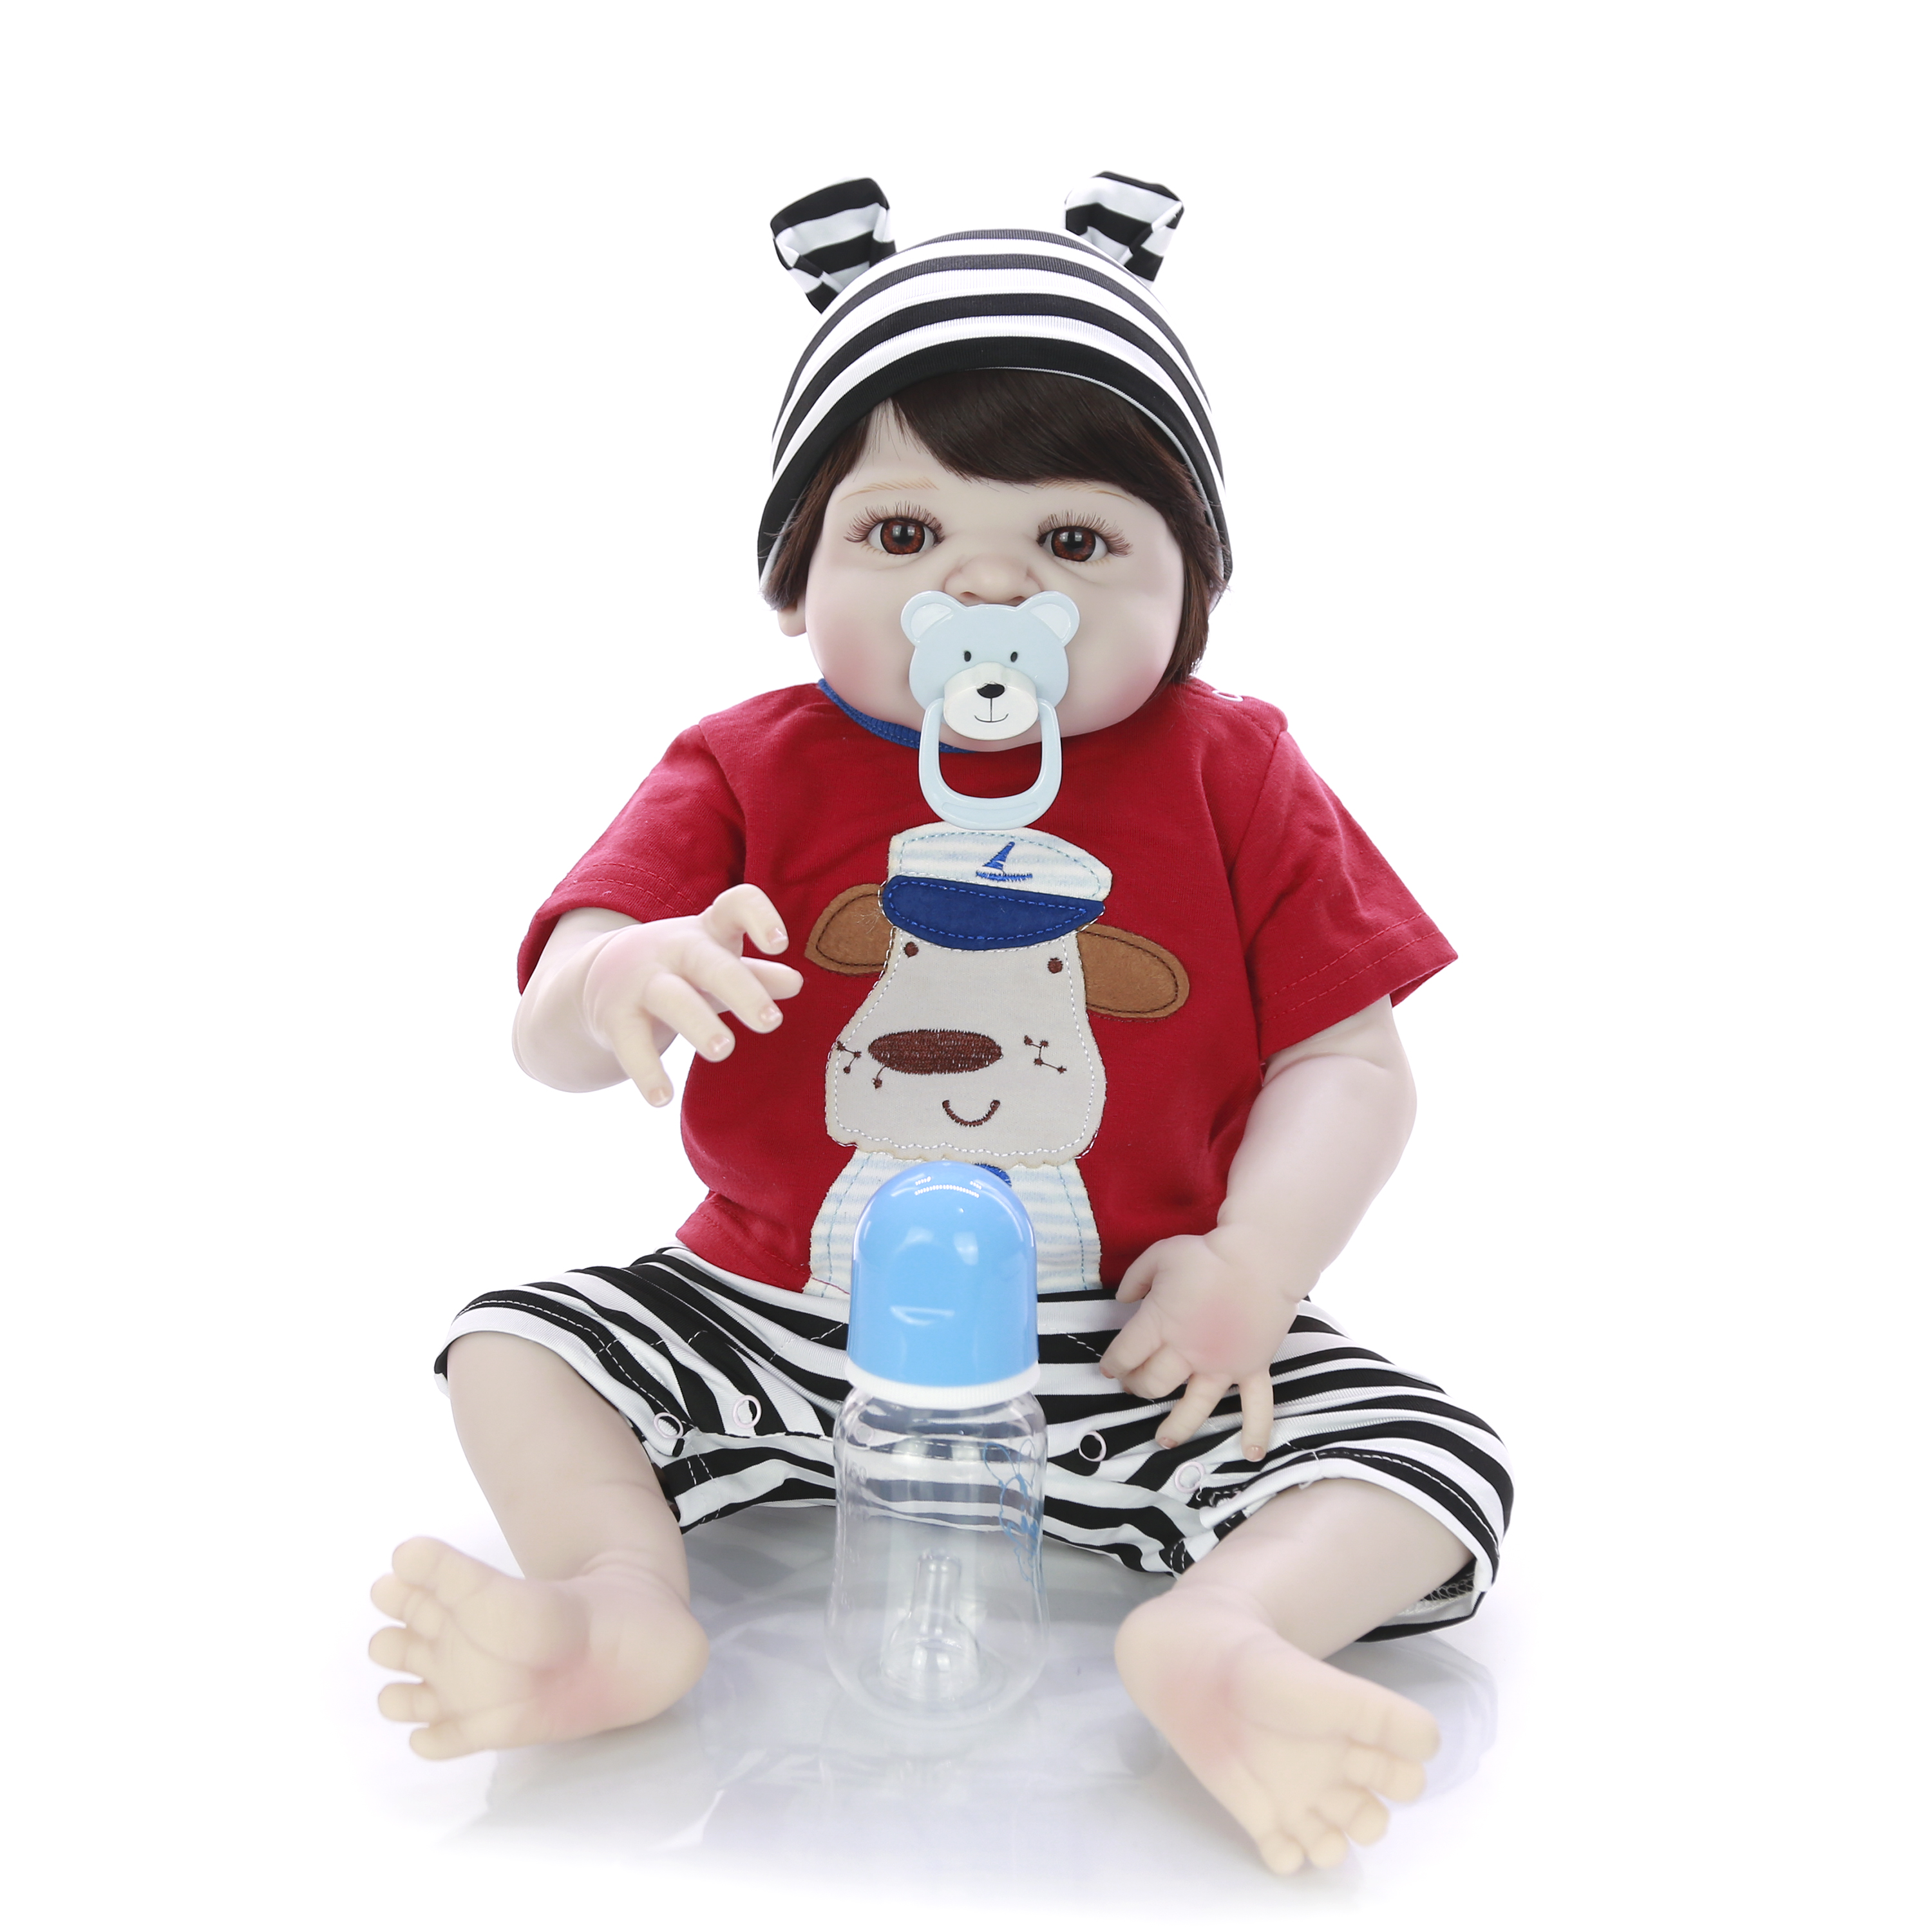 Fashion Reborn Baby Dolls Full Vinyl Body 23'' Realistic Silicone Boneca Reborns Hot Sale Baby Boy Toys Newborn Dolls For Gifts-in Dolls from Toys & Hobbies    3